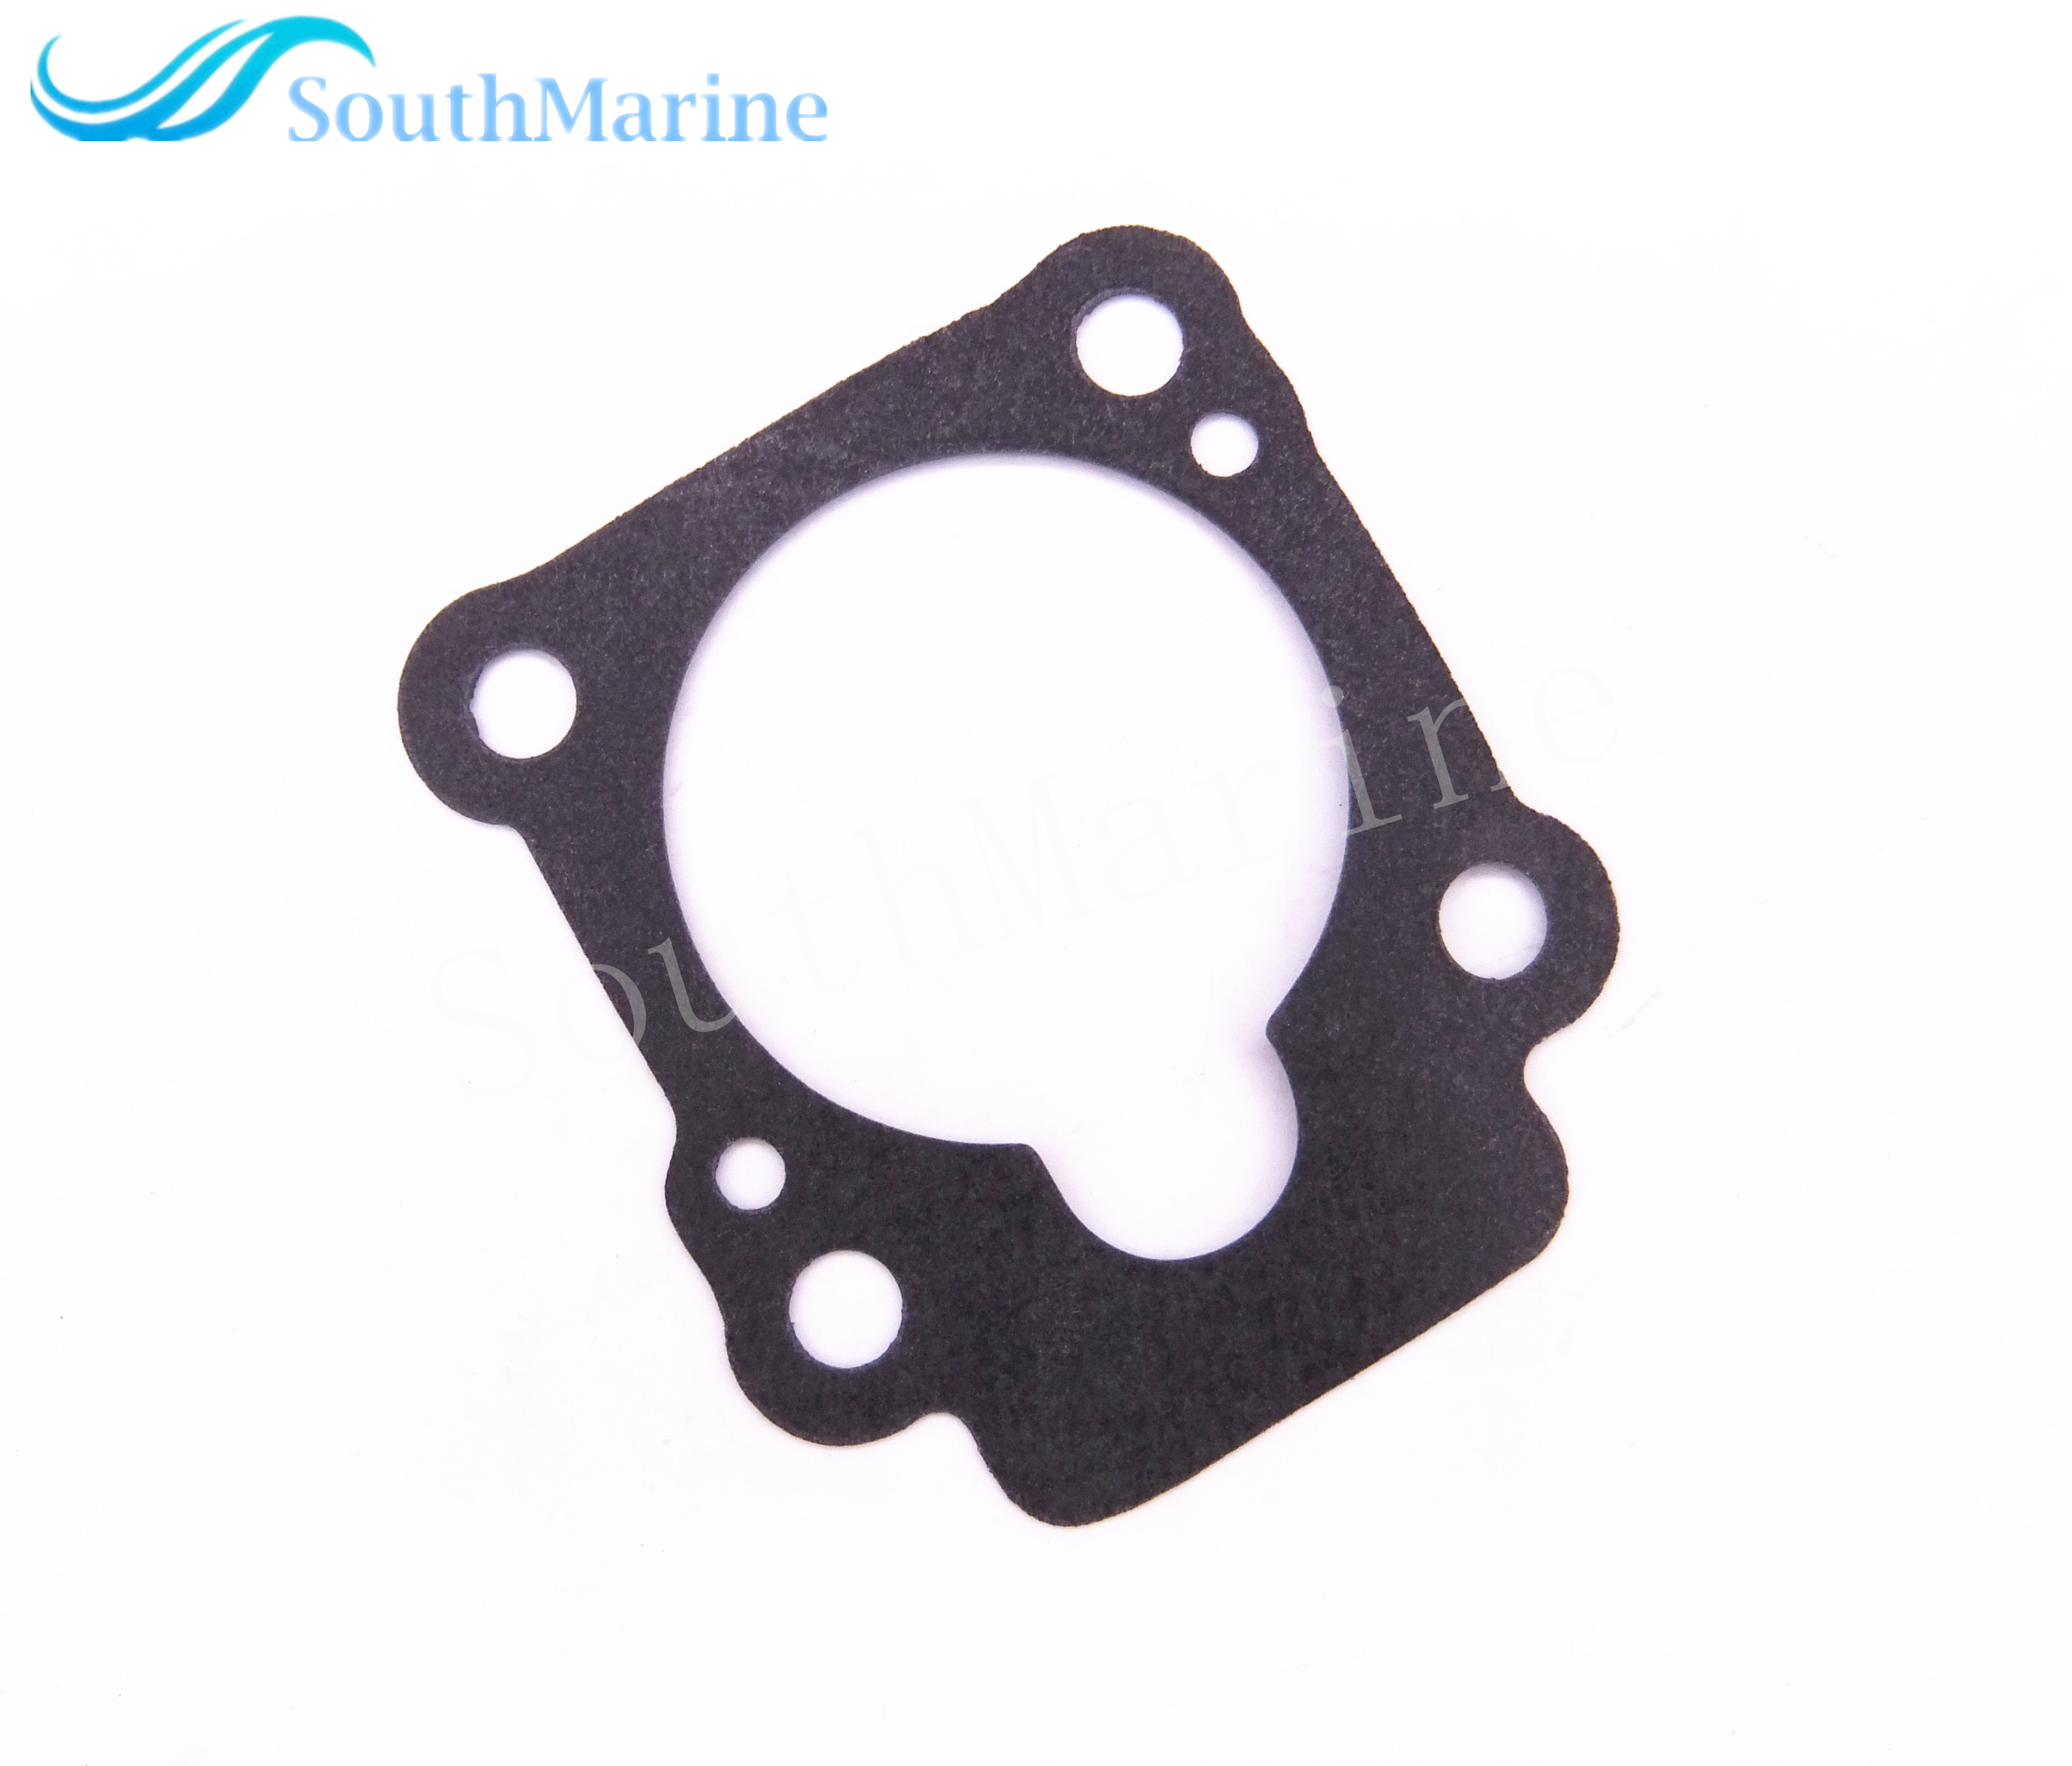 Boat Motor F8-04000008 Outer Plate Gasket for Parsun 2-Stroke F8 F9.8 T6 T8 T9.8 Outboard Engine